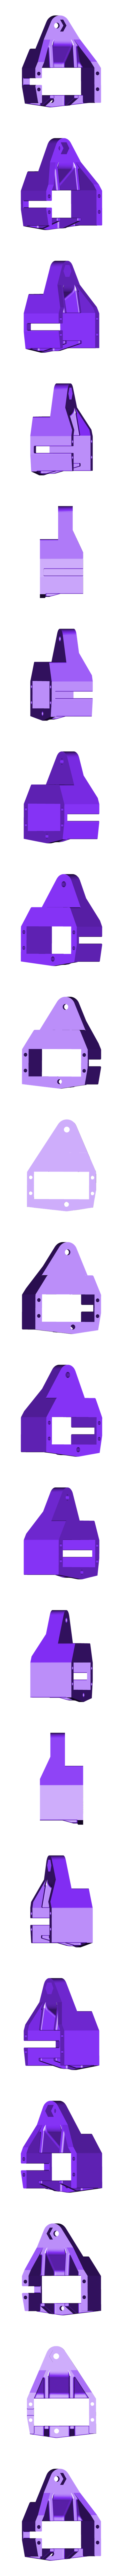 OpenRC_F1_250scaled_-_Part6-1.STL Download free STL file OpenRC F1 250% scaled • Template to 3D print, colorFabb